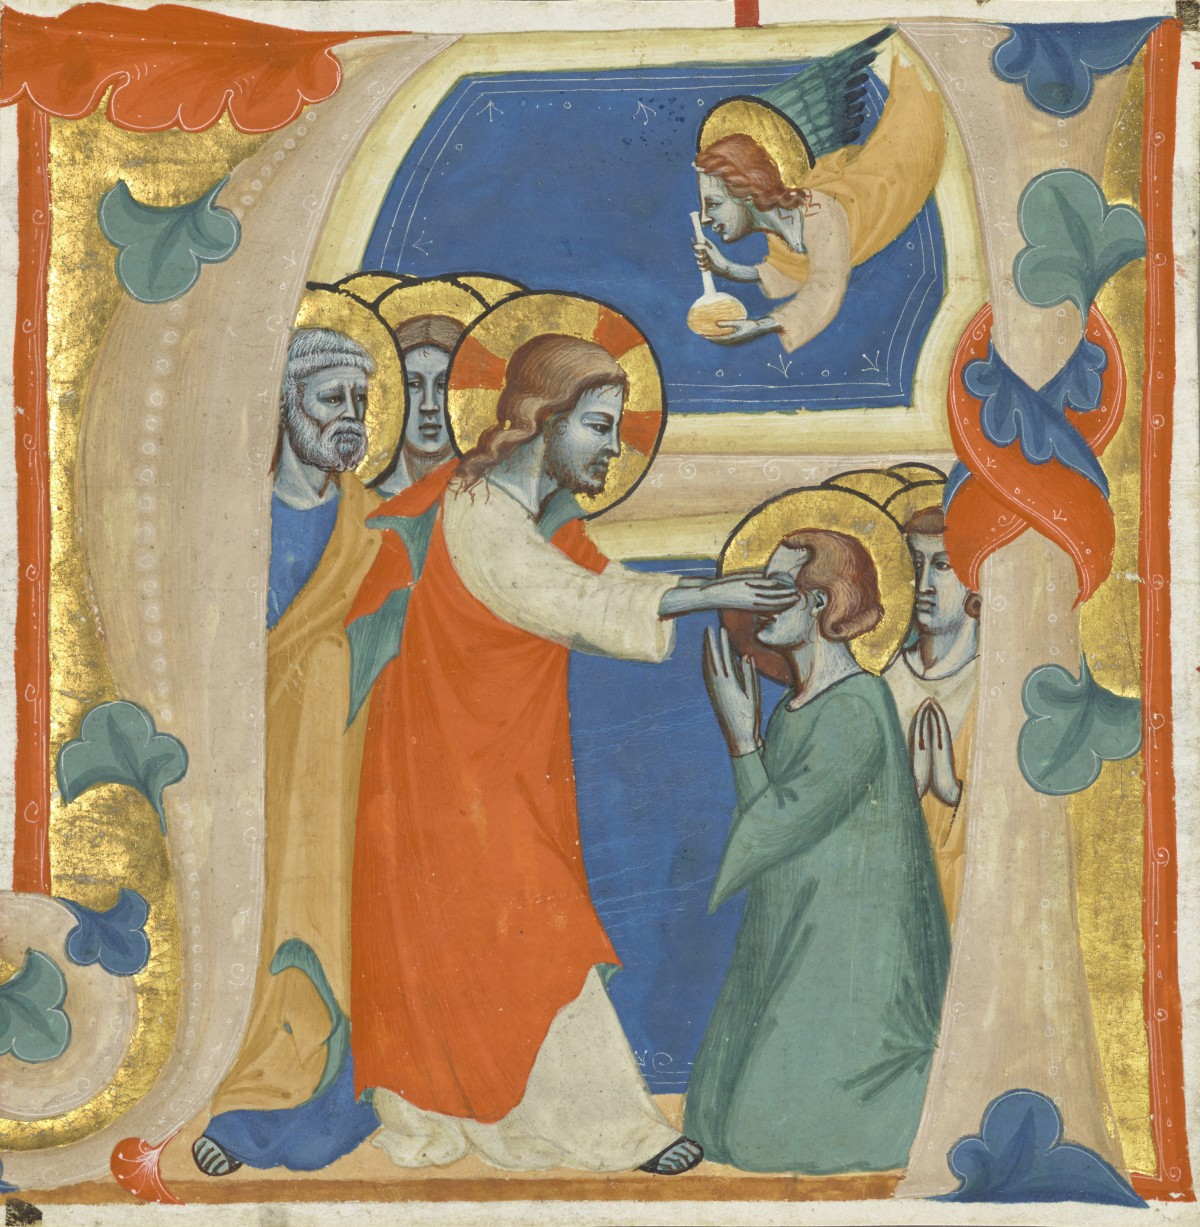 Initial A: Christ Wiping the Tears from the Eyes of the Saved, attributed to the Master of the Antiphonary of San Giovanni Fuorcivitas, about 1345–50. Tempera colors and gold leaf on parchment, 5 1/3 x 5 1/3 in (13.5 x 13.5 cm). The J. Paul Getty Museum, Ms. 113, recto